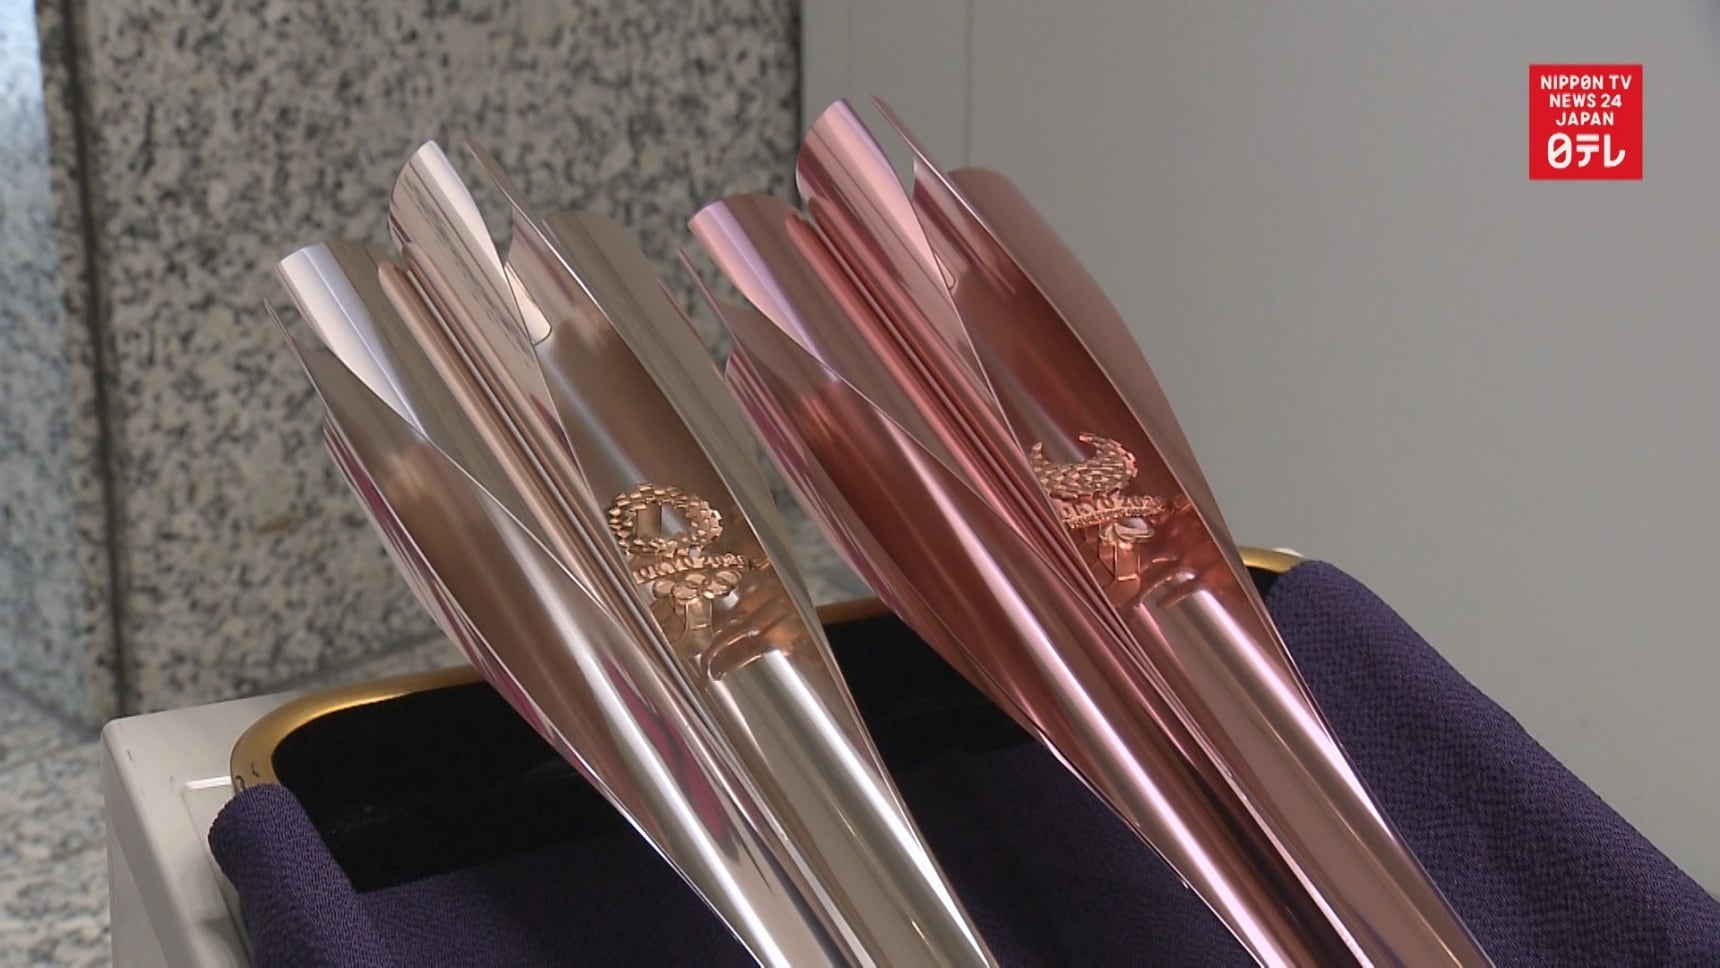 2020 Olympic Torches on Display in Tokyo